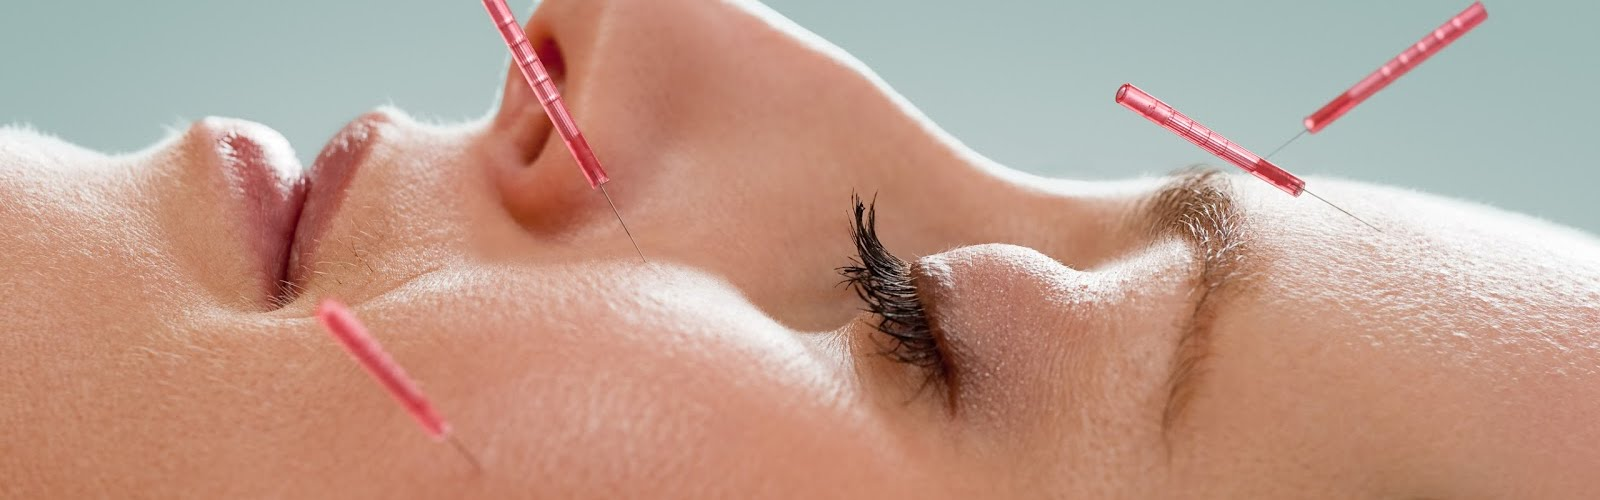 a lady with acupuncture needles in her face